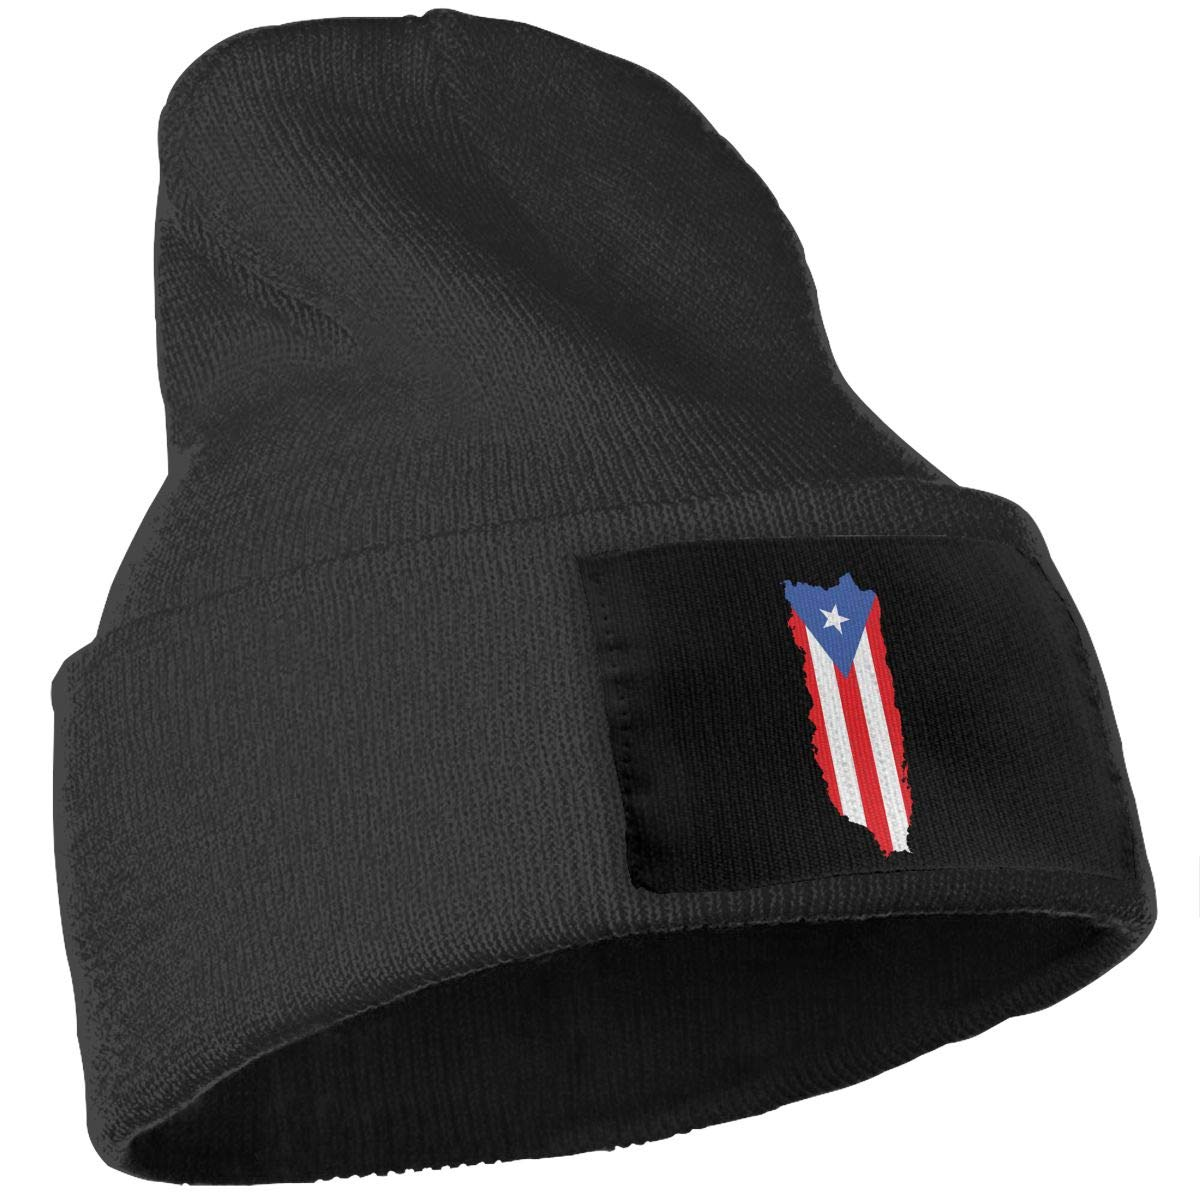 Puerto Rico Flag Island Outdoor Winter Ski Knit Beanie Hat Cap for Men and Women